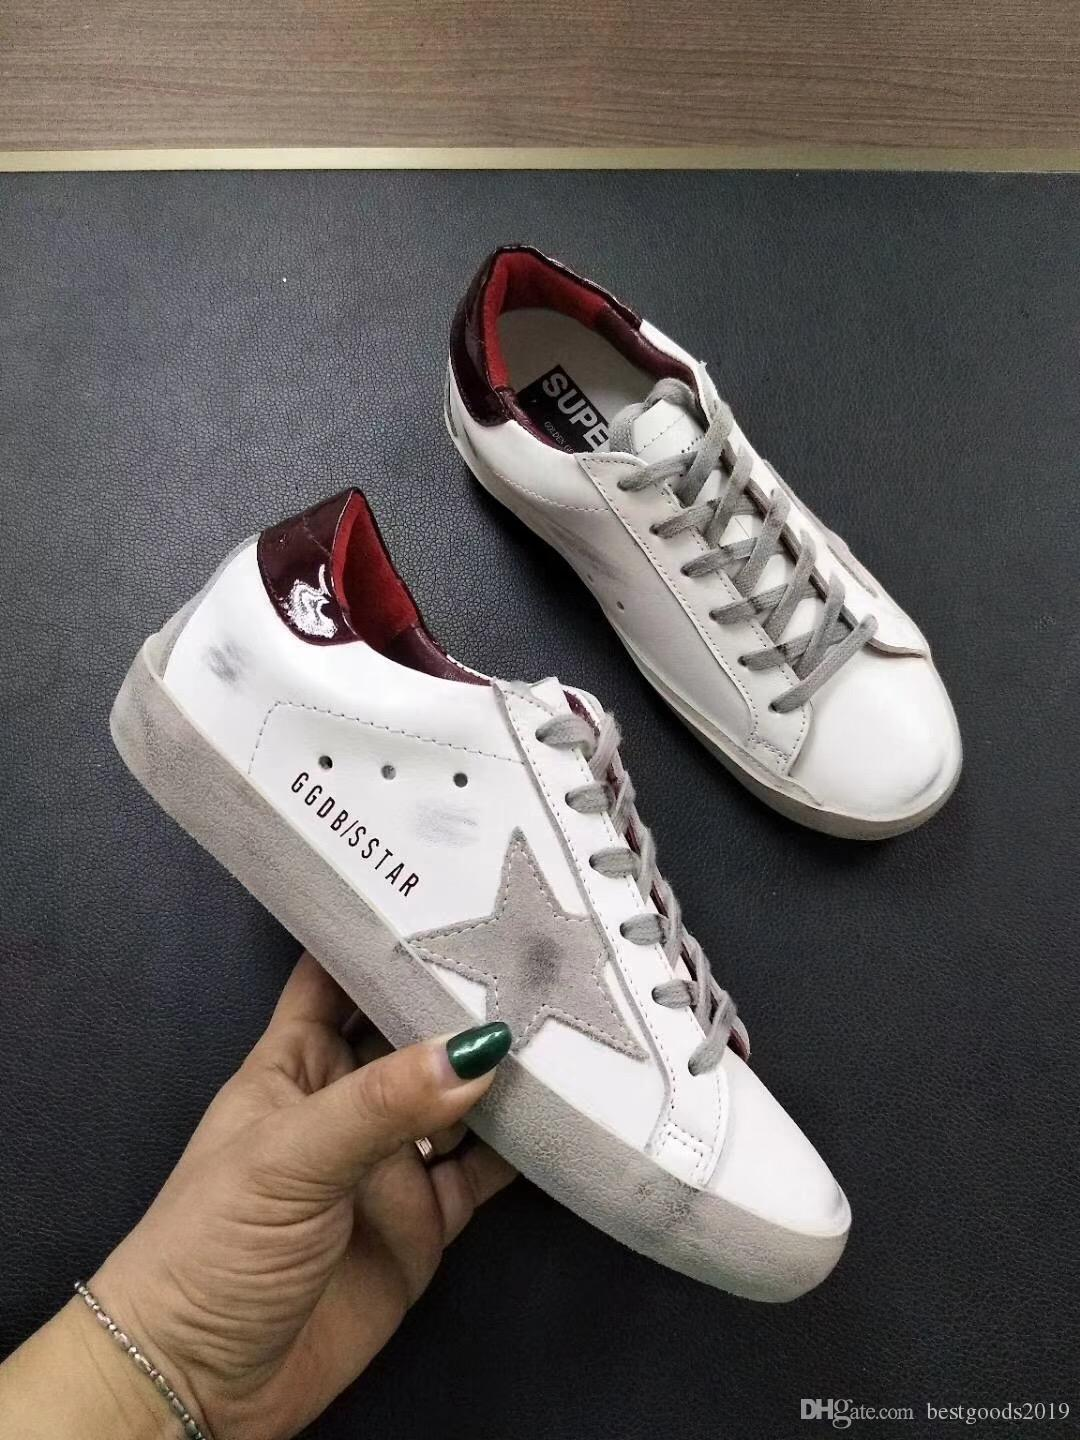 2e163addf5804 Golden Goose Deluxe Brand GGDB Best Quality Womens Men Old Style Sneakers  Genuine Leather Villous Dermis Shoes Sneakers Boots 57 Mens Dress Shoes  Platform ...